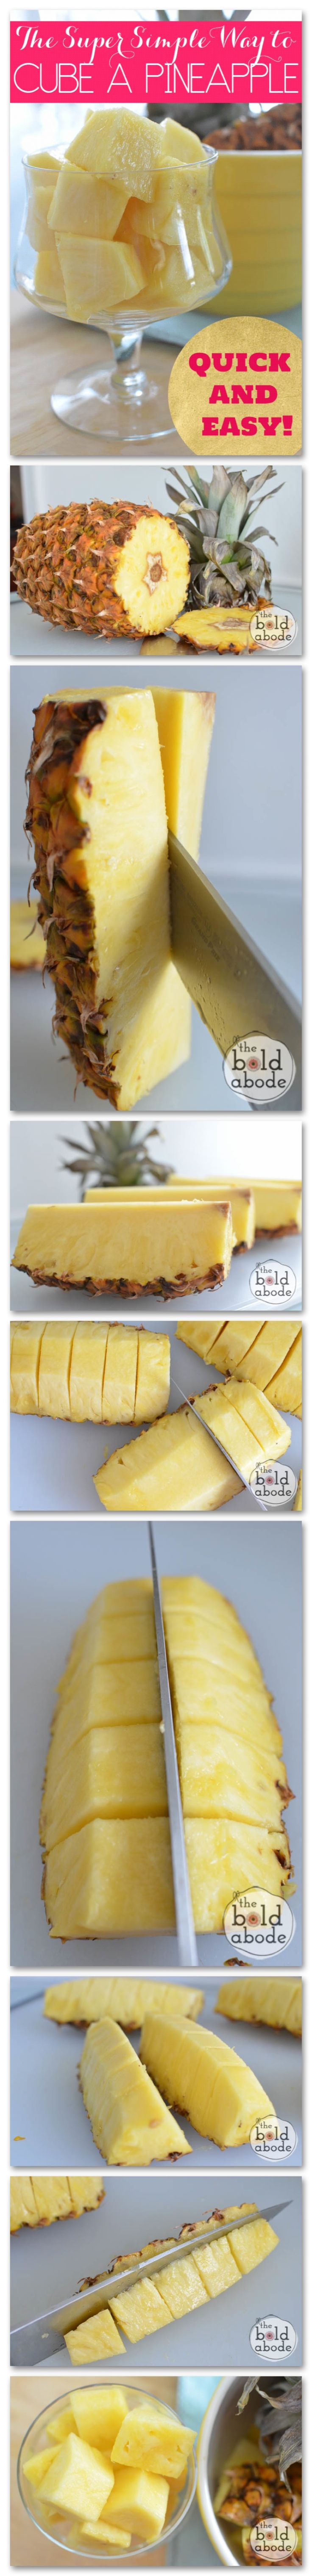 Quick and easy way to cut a pineapple!